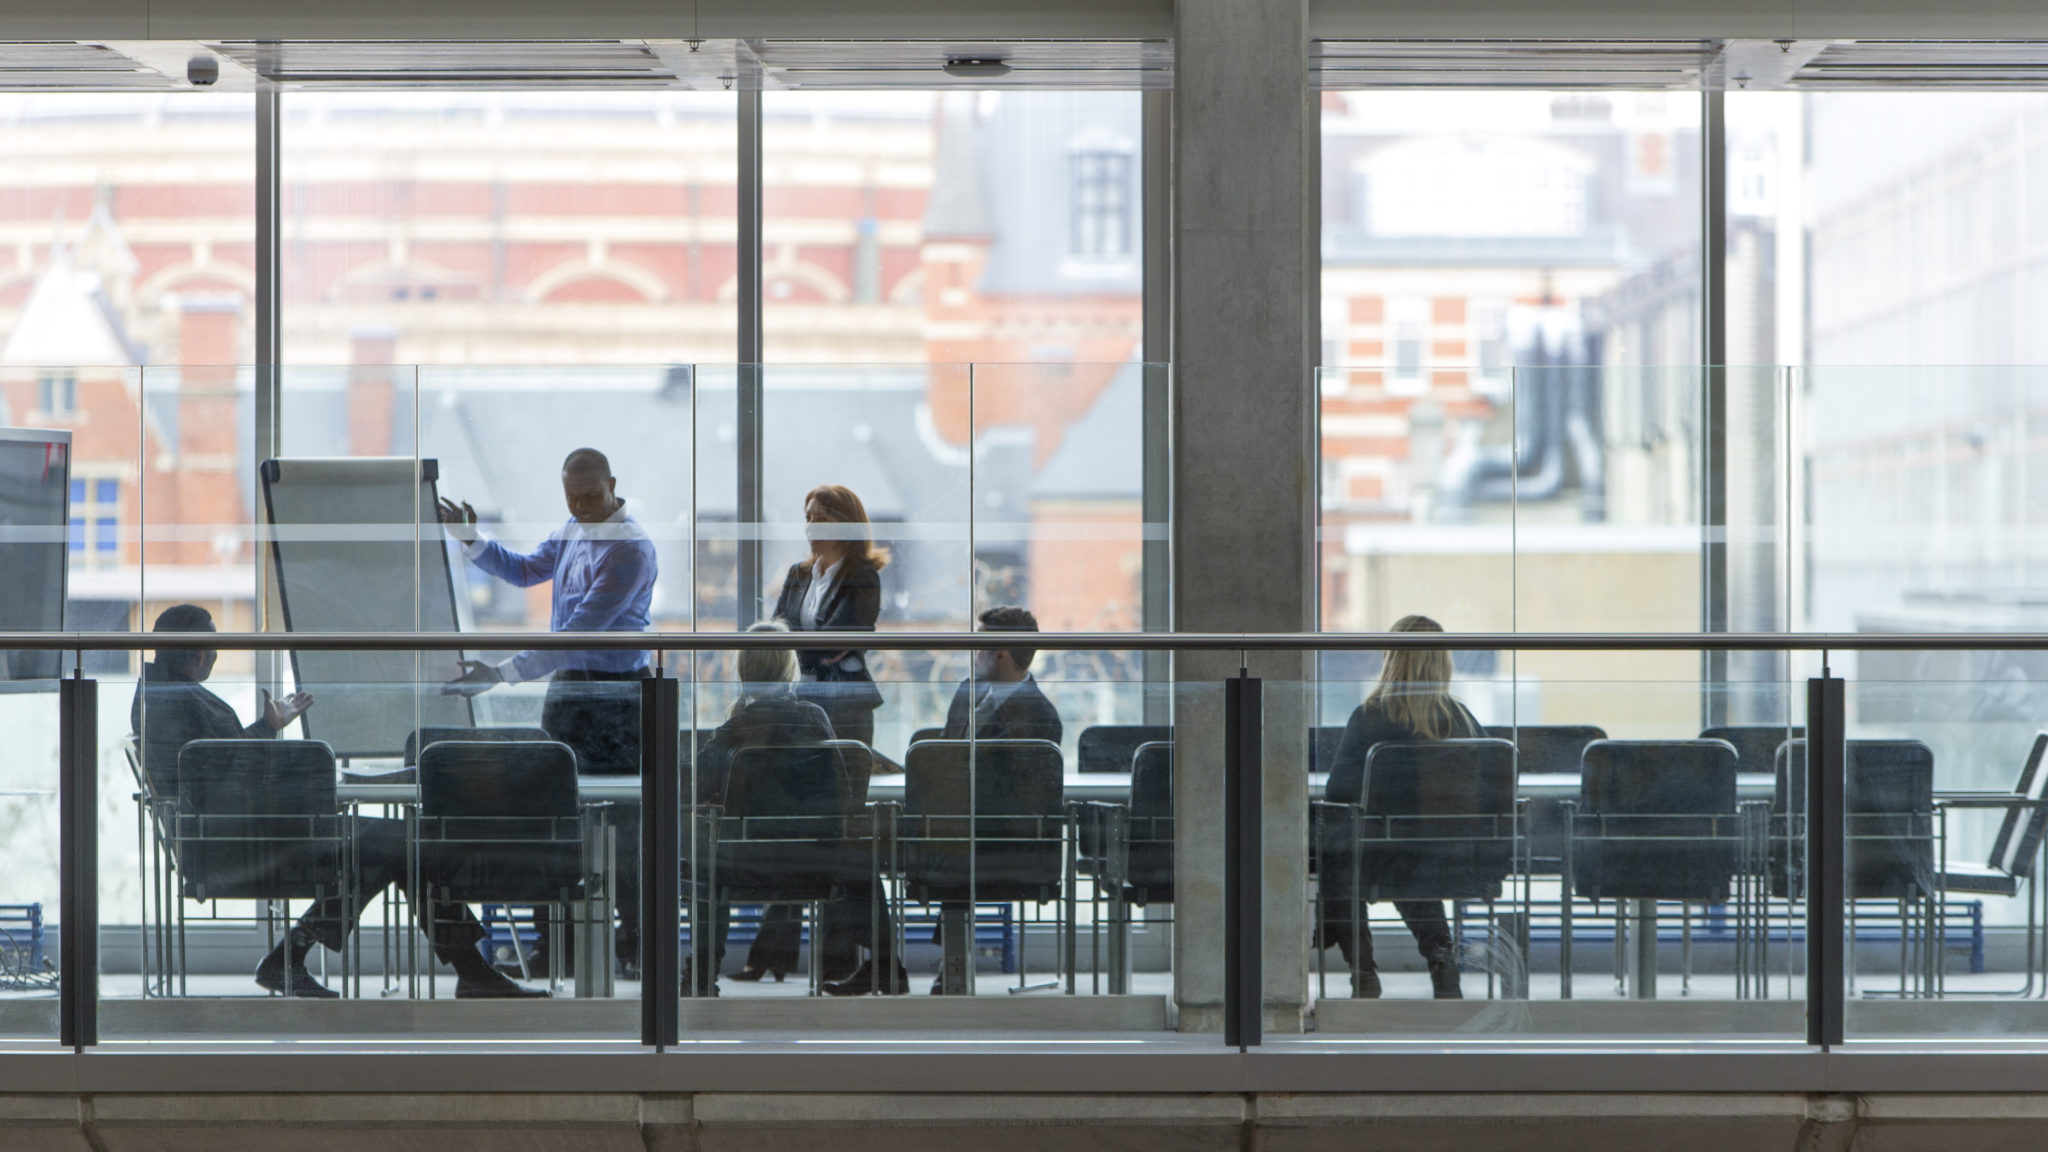 Photo of a group of six business people in a boardroom meeting. Shot at a distance from outside through the glass.